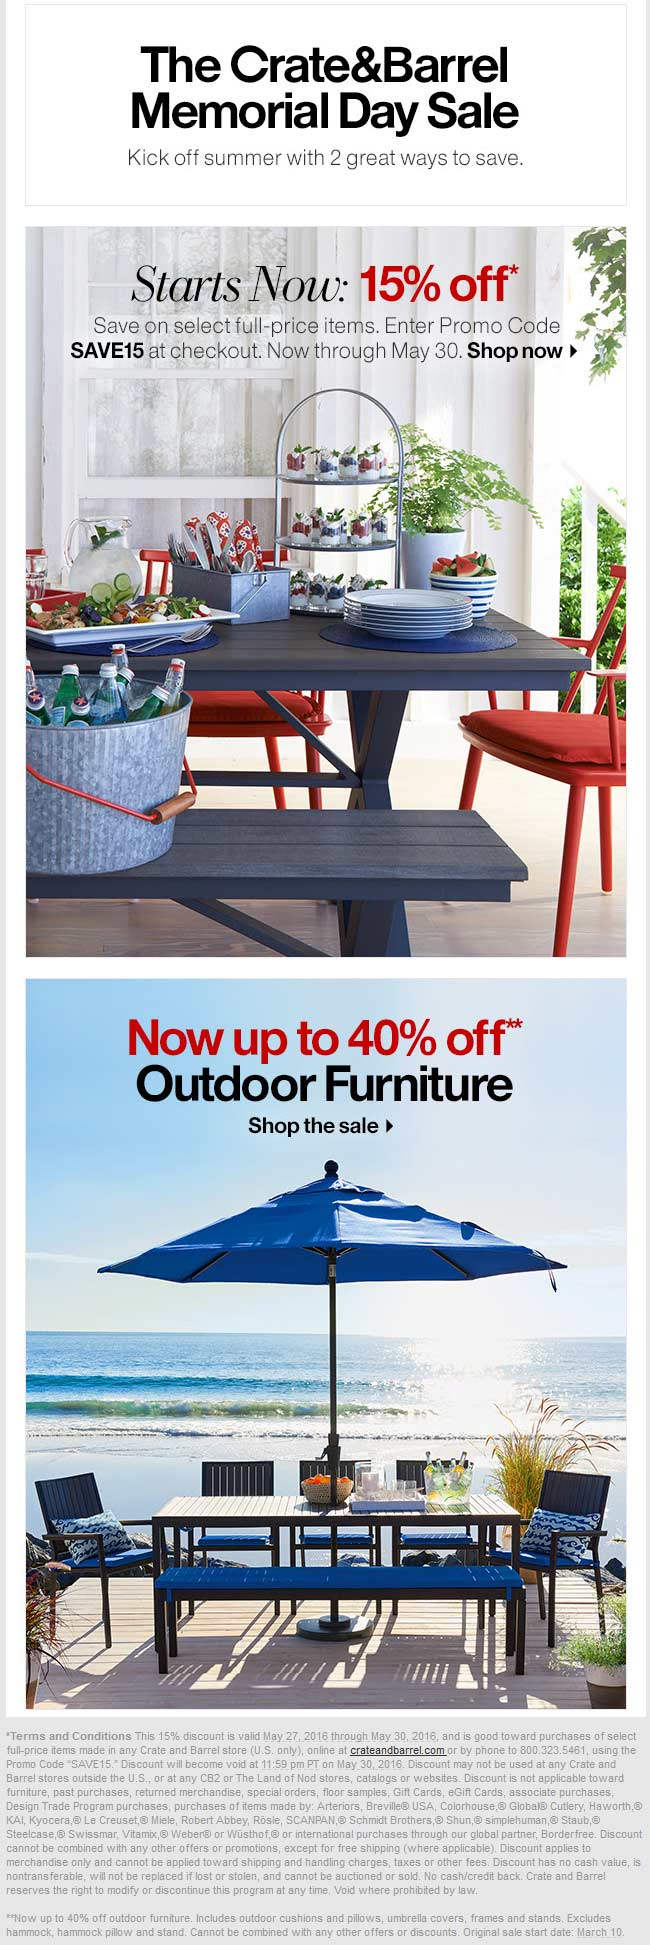 Crate & Barrel Coupon August 2017 15% off at Crate & Barrel, or online via promo code SAVE15